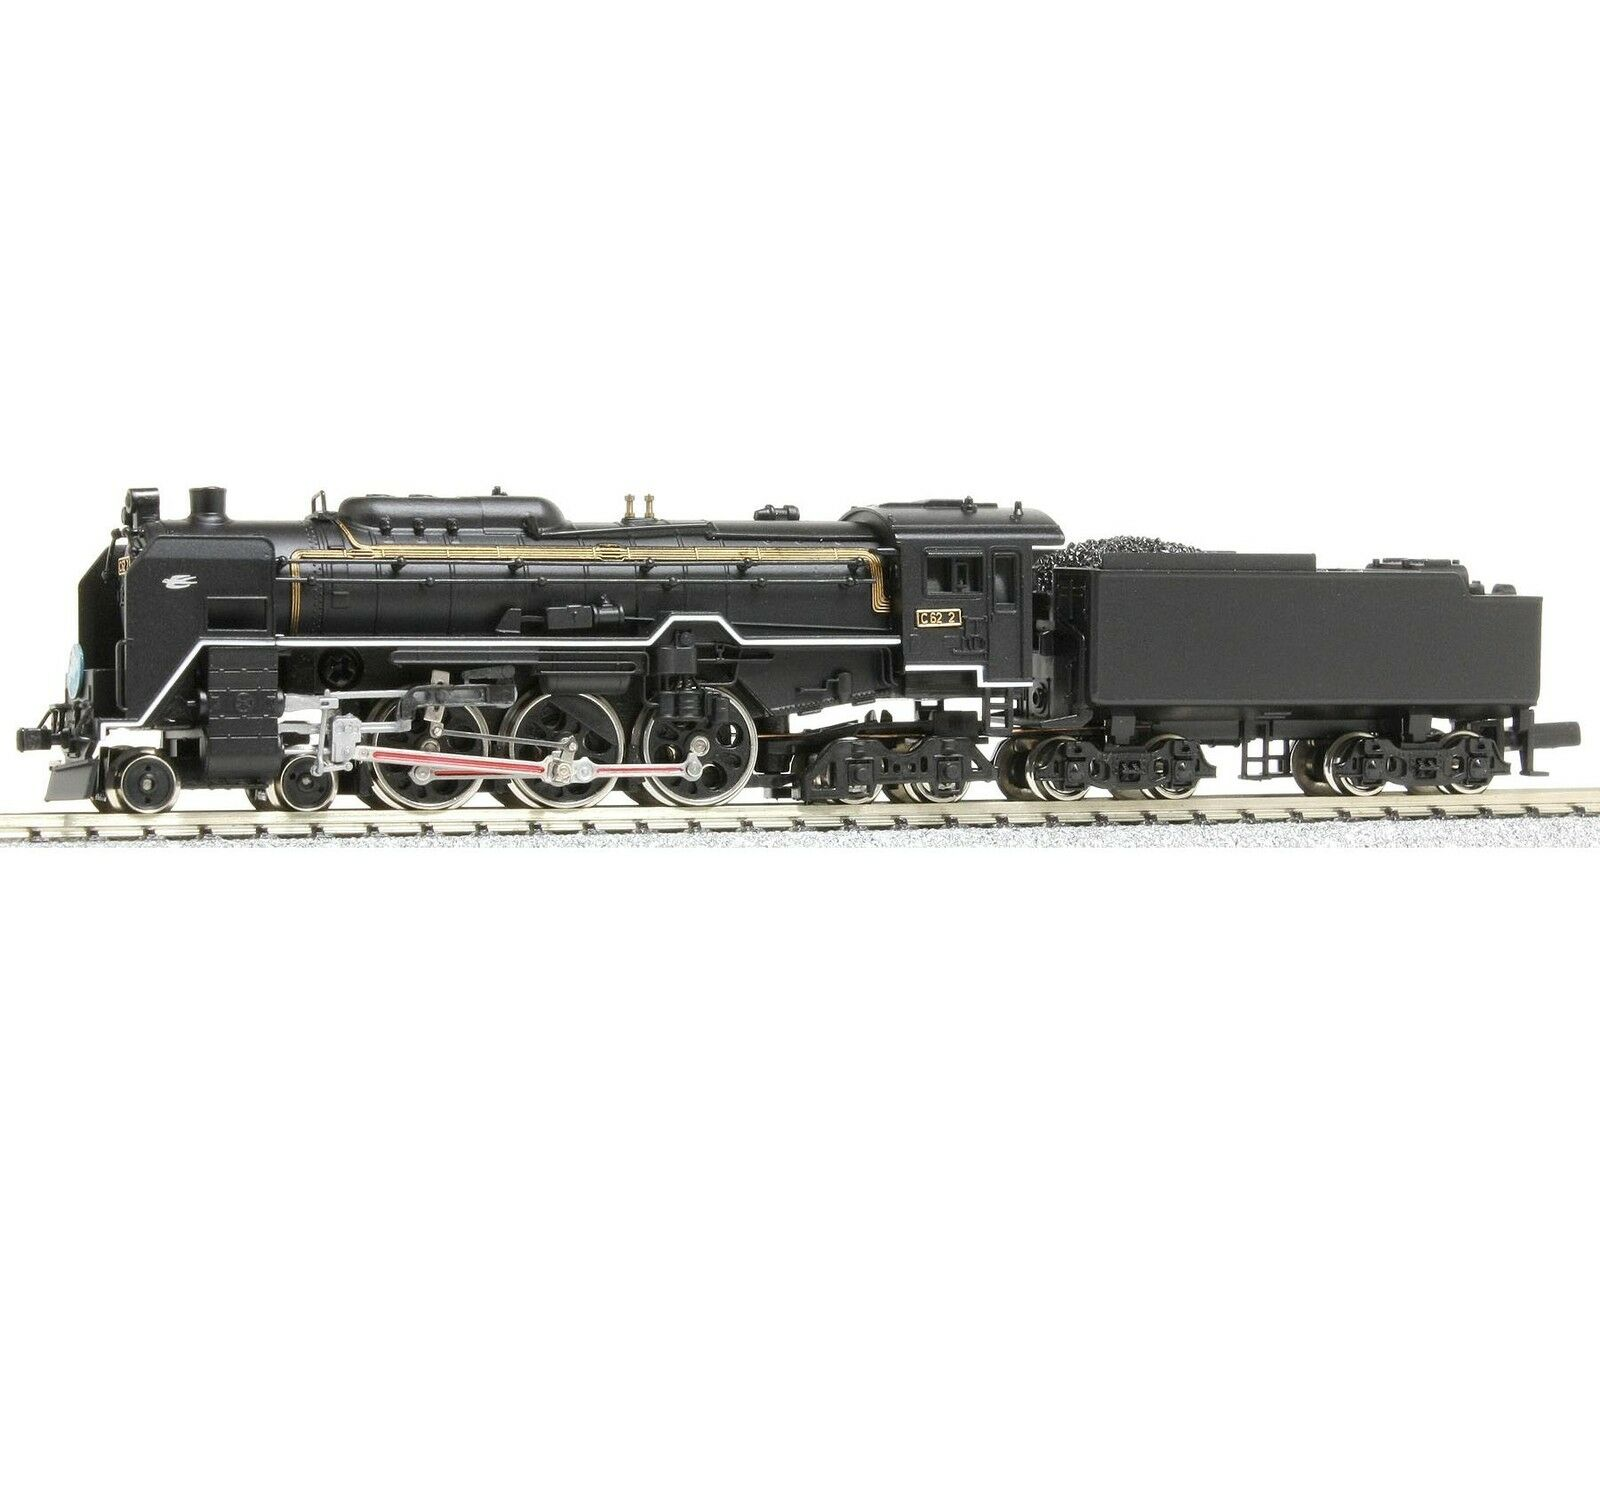 MicroAce A9801 Steam Locomotive 4-6-4 Type C62-2 Hakodate Swallow Angel - N